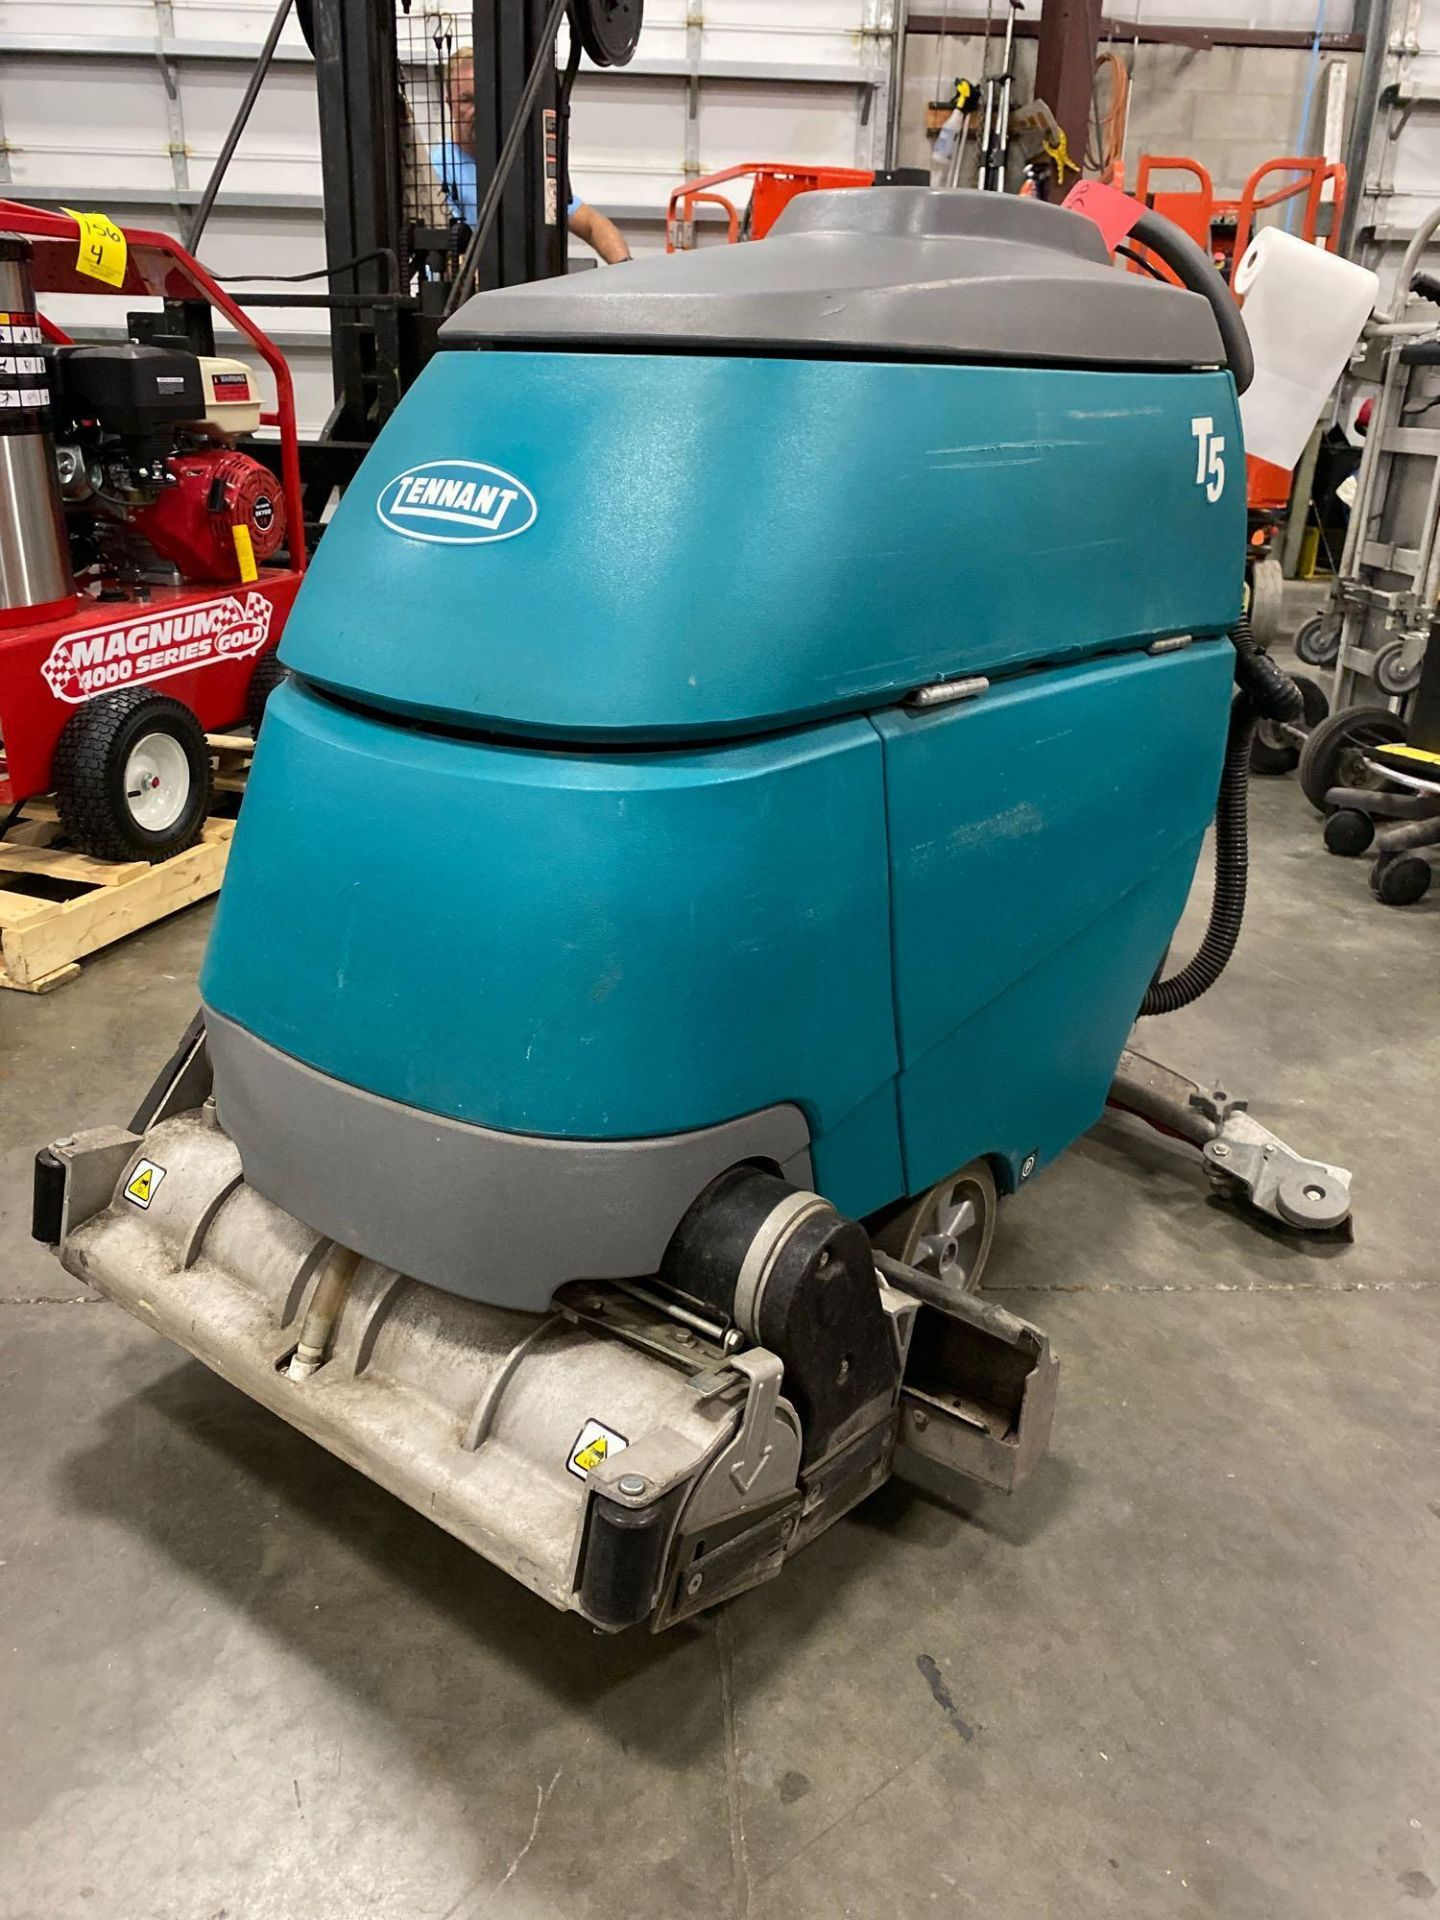 Lot 150 - TENNANT T5 FLOOR SCRUBBER, BUILT IN BATTERY CHARGER, RUNS & OPERATES